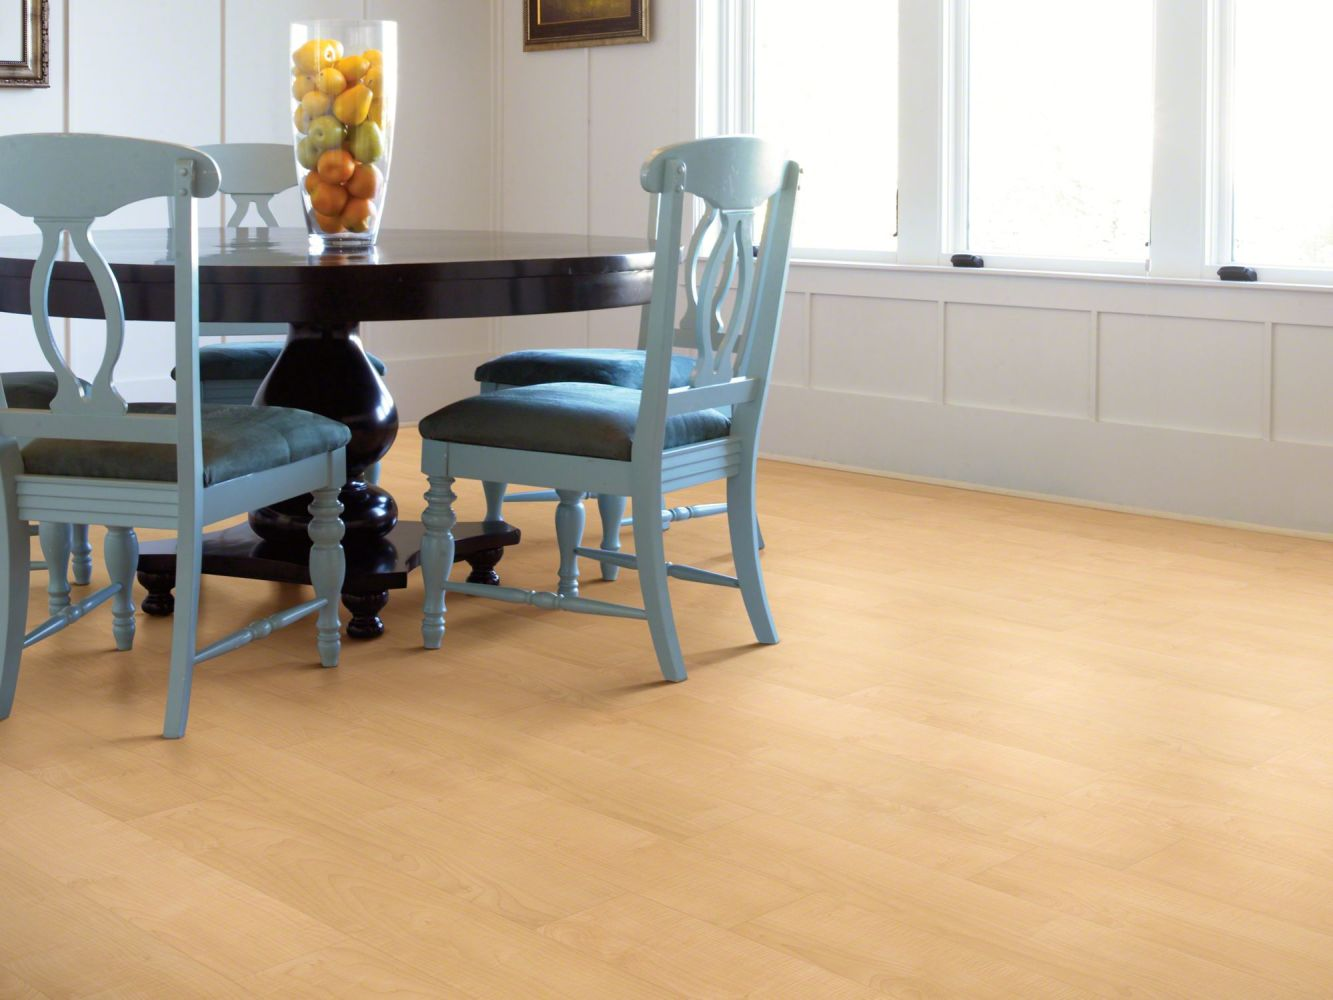 Shaw Floors Vinyl Residential Urbanality 12 Plank Bright Lights 00225_0310V